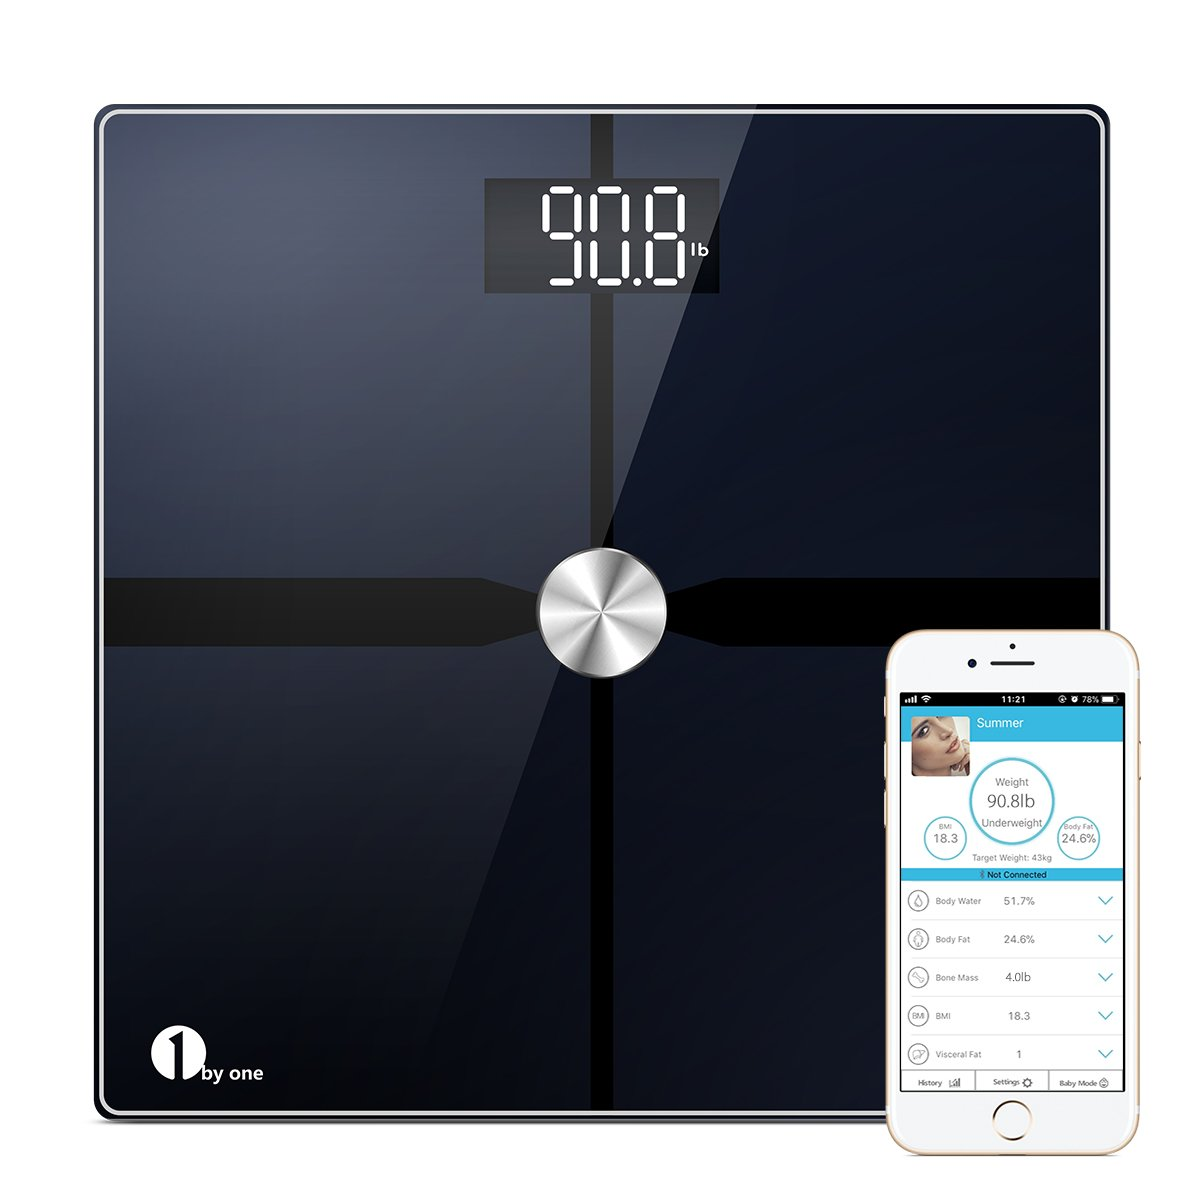 1byone Bluetooth Body Fat Scale with IOS and Android App, Smart Digital Bathroom Weight Scale, Body Composition Analyzer, ITO Conductive Surface Technology - Black